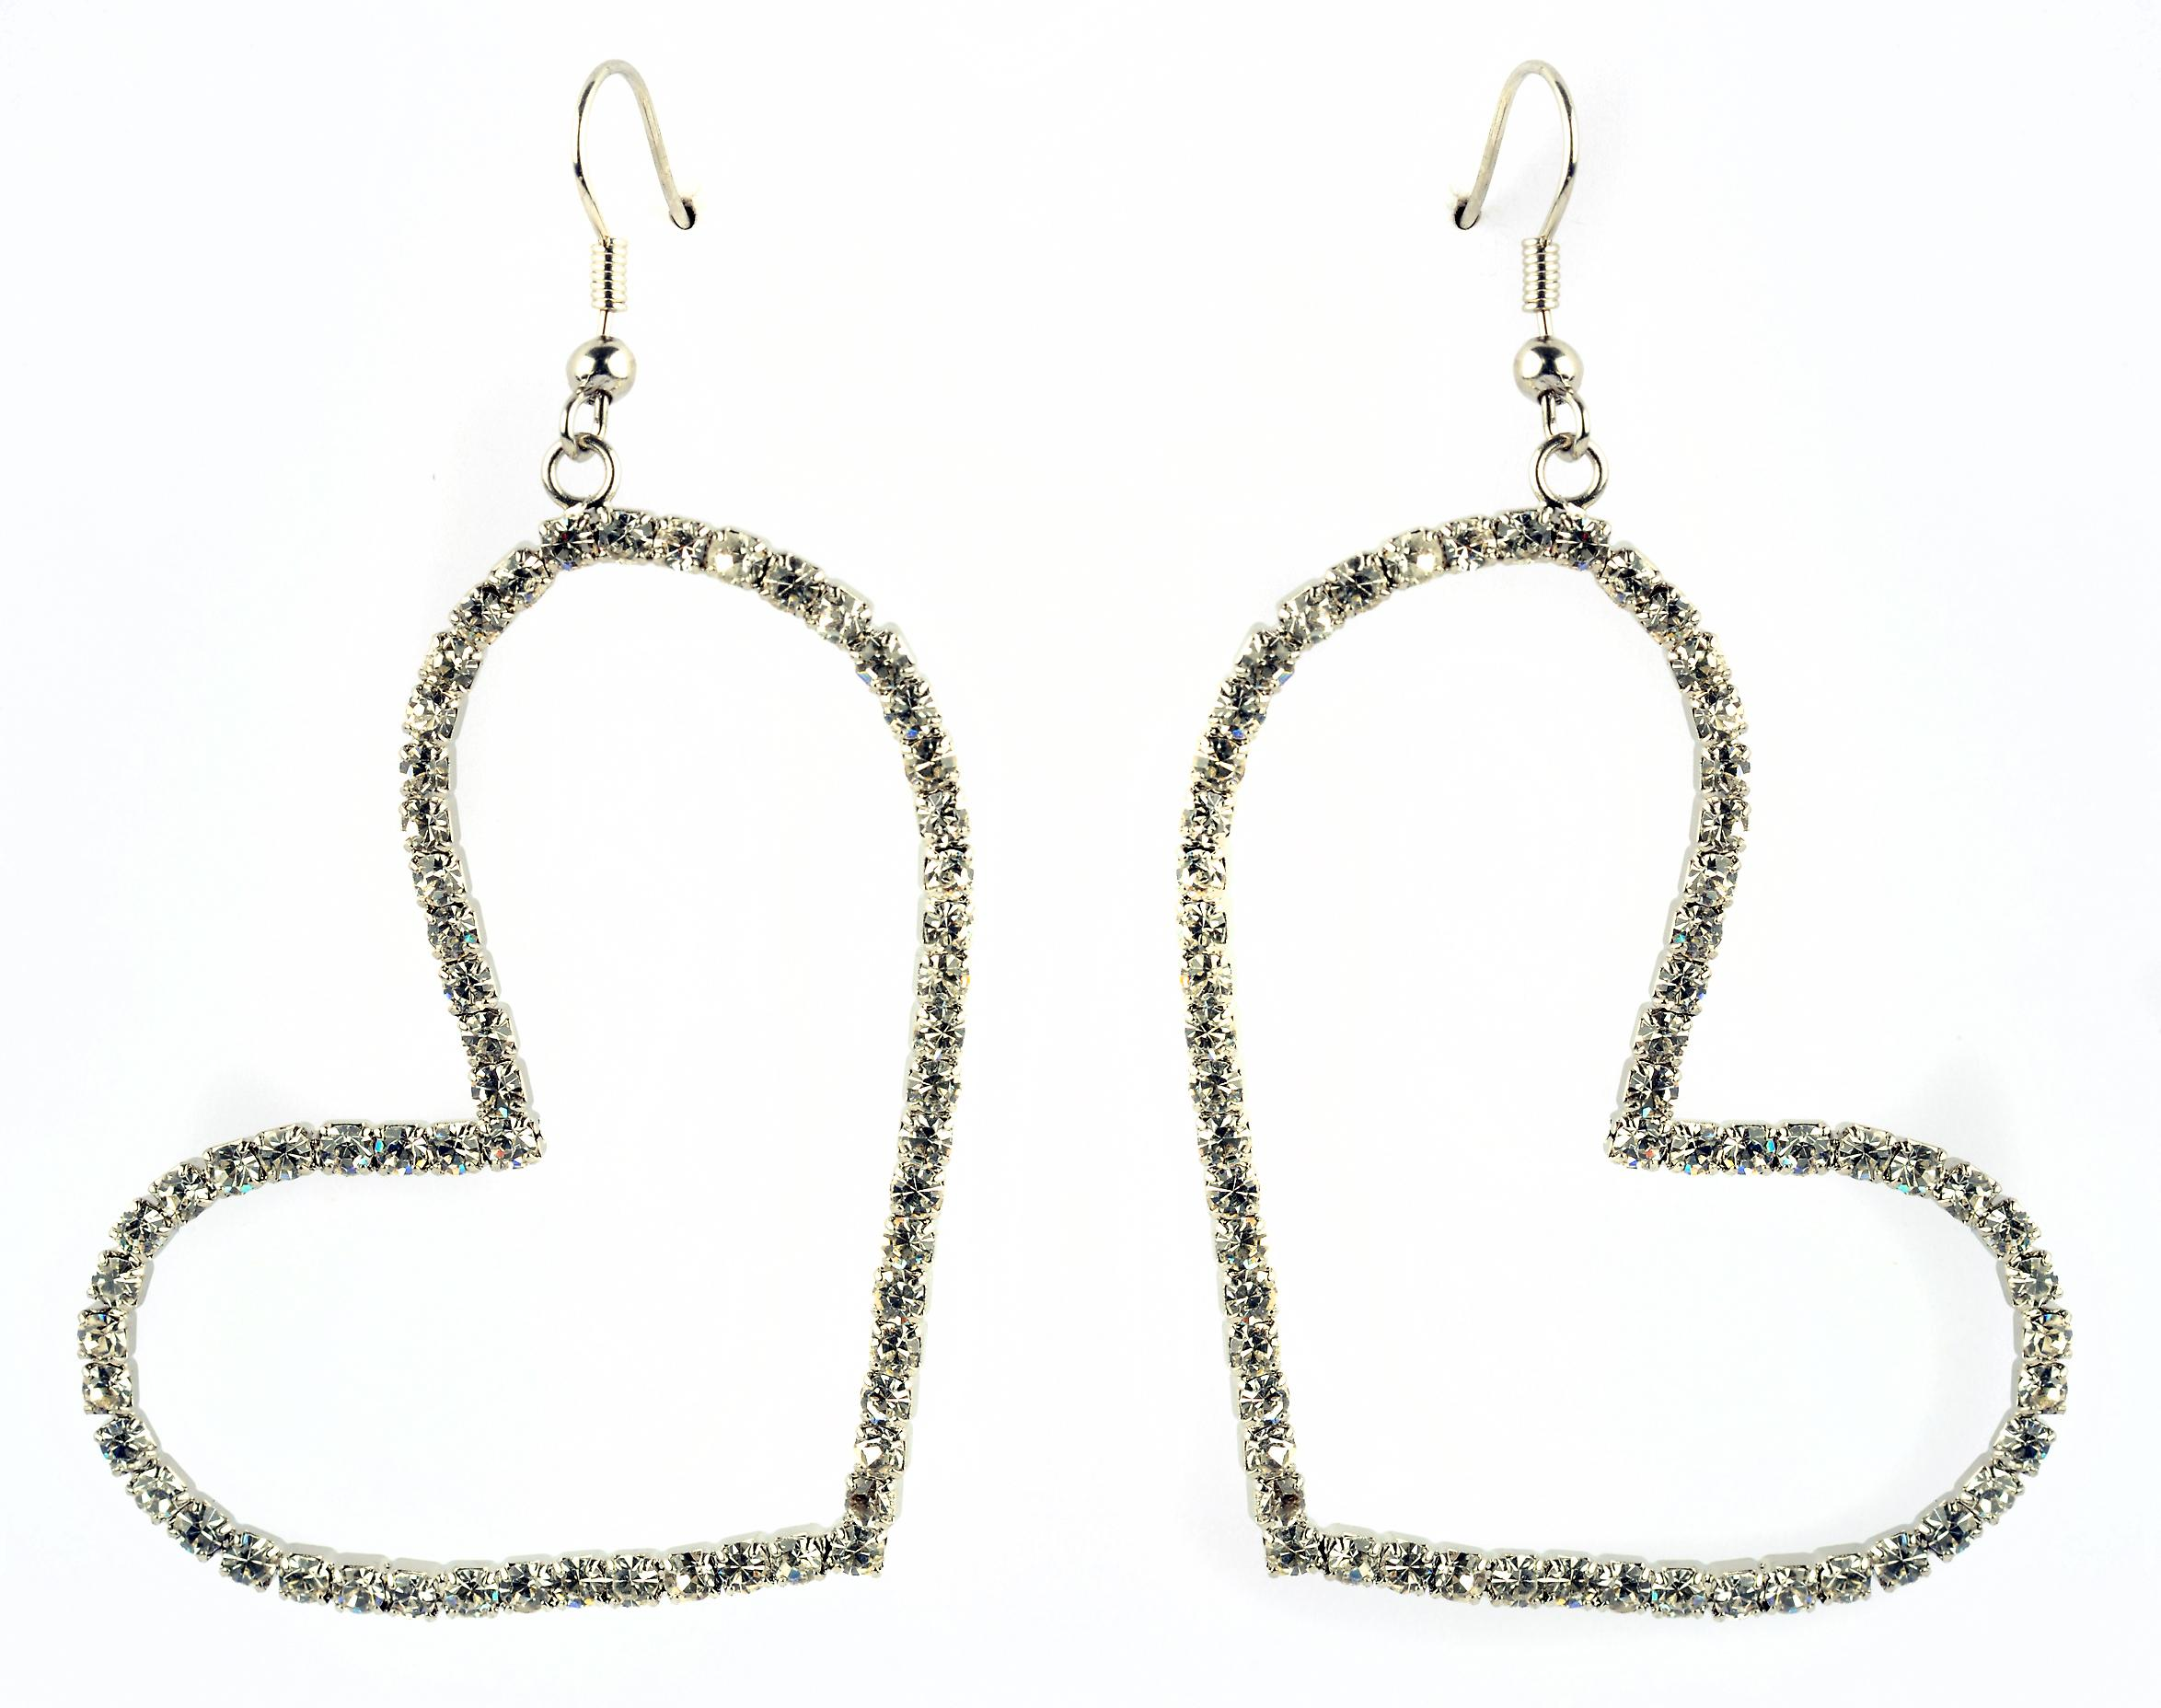 Waooh - Jewelry - WJ0756 - earrings with Rhinestone Swarovski white Style diamond - heart shaped frame